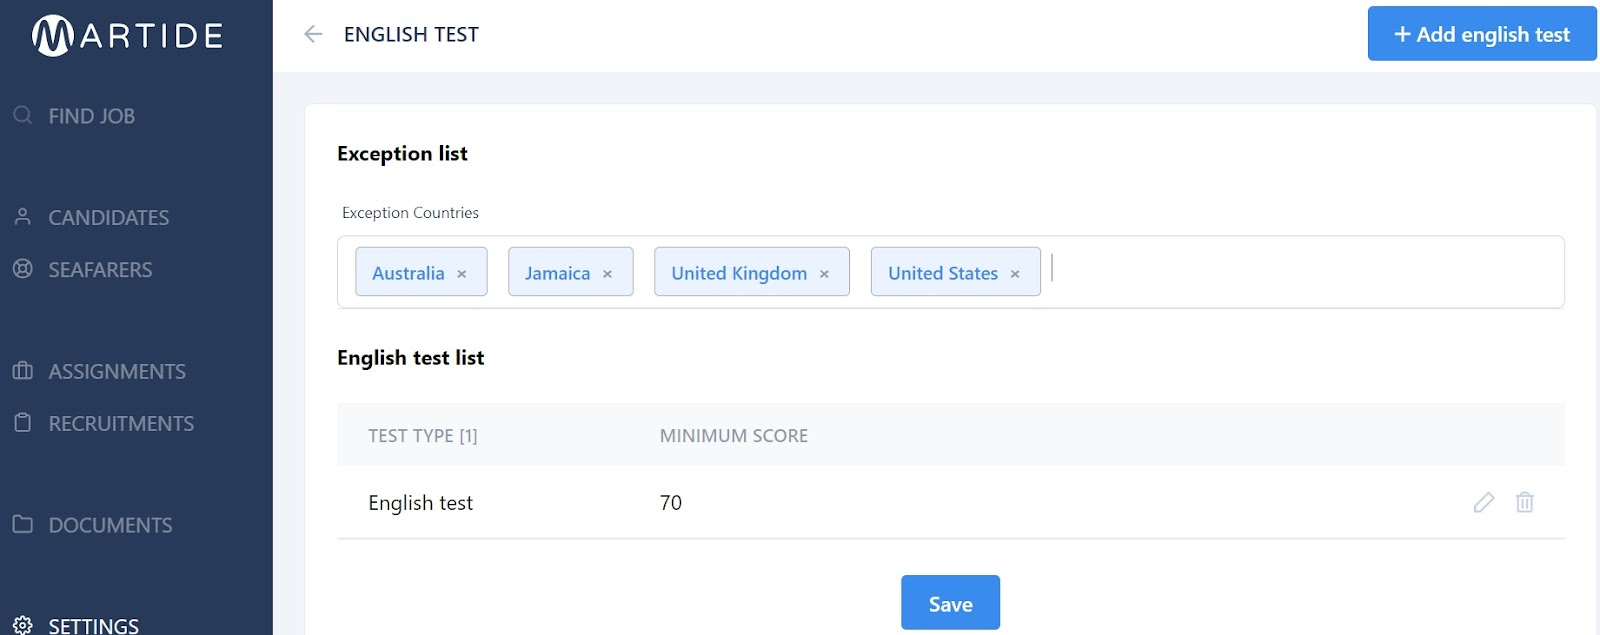 screenshot of Martide website showing how to exclude exempt countries.